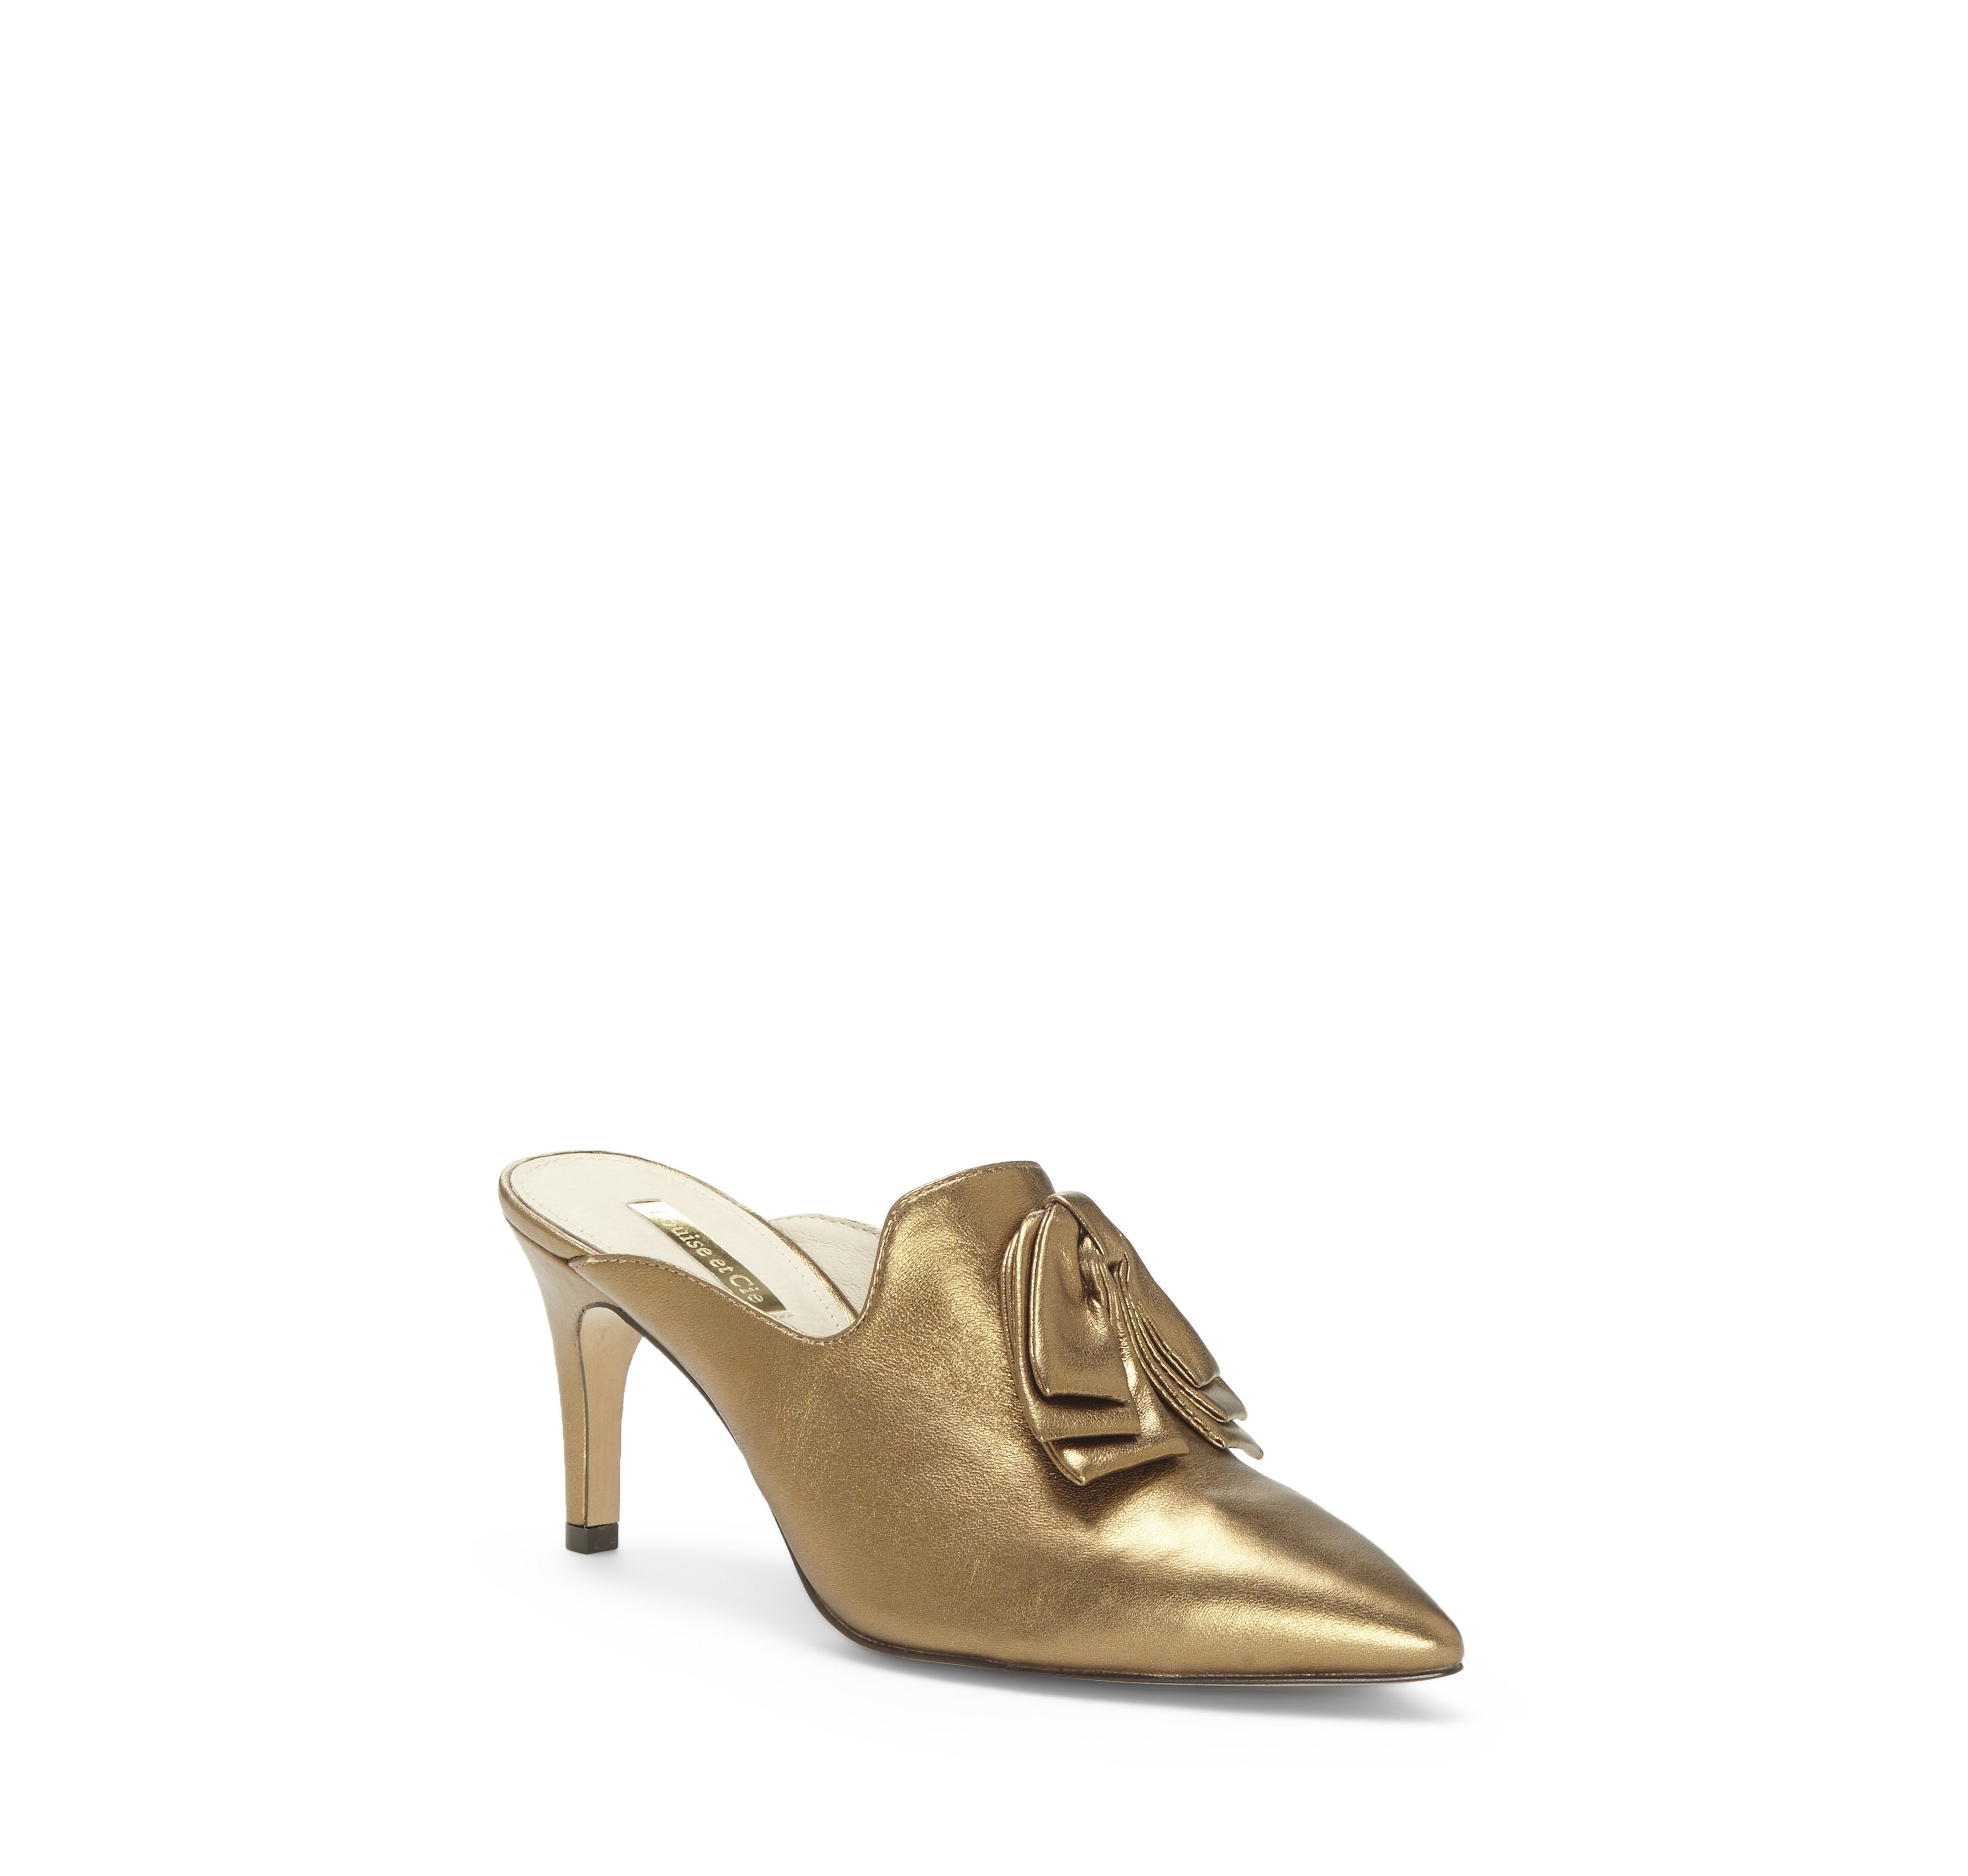 find great for sale Manolo Blahnik Pointed-Toe Bow-Adorned Mules for cheap sale online marketable online outlet for cheap Manchester cheap online HhVhVgR86